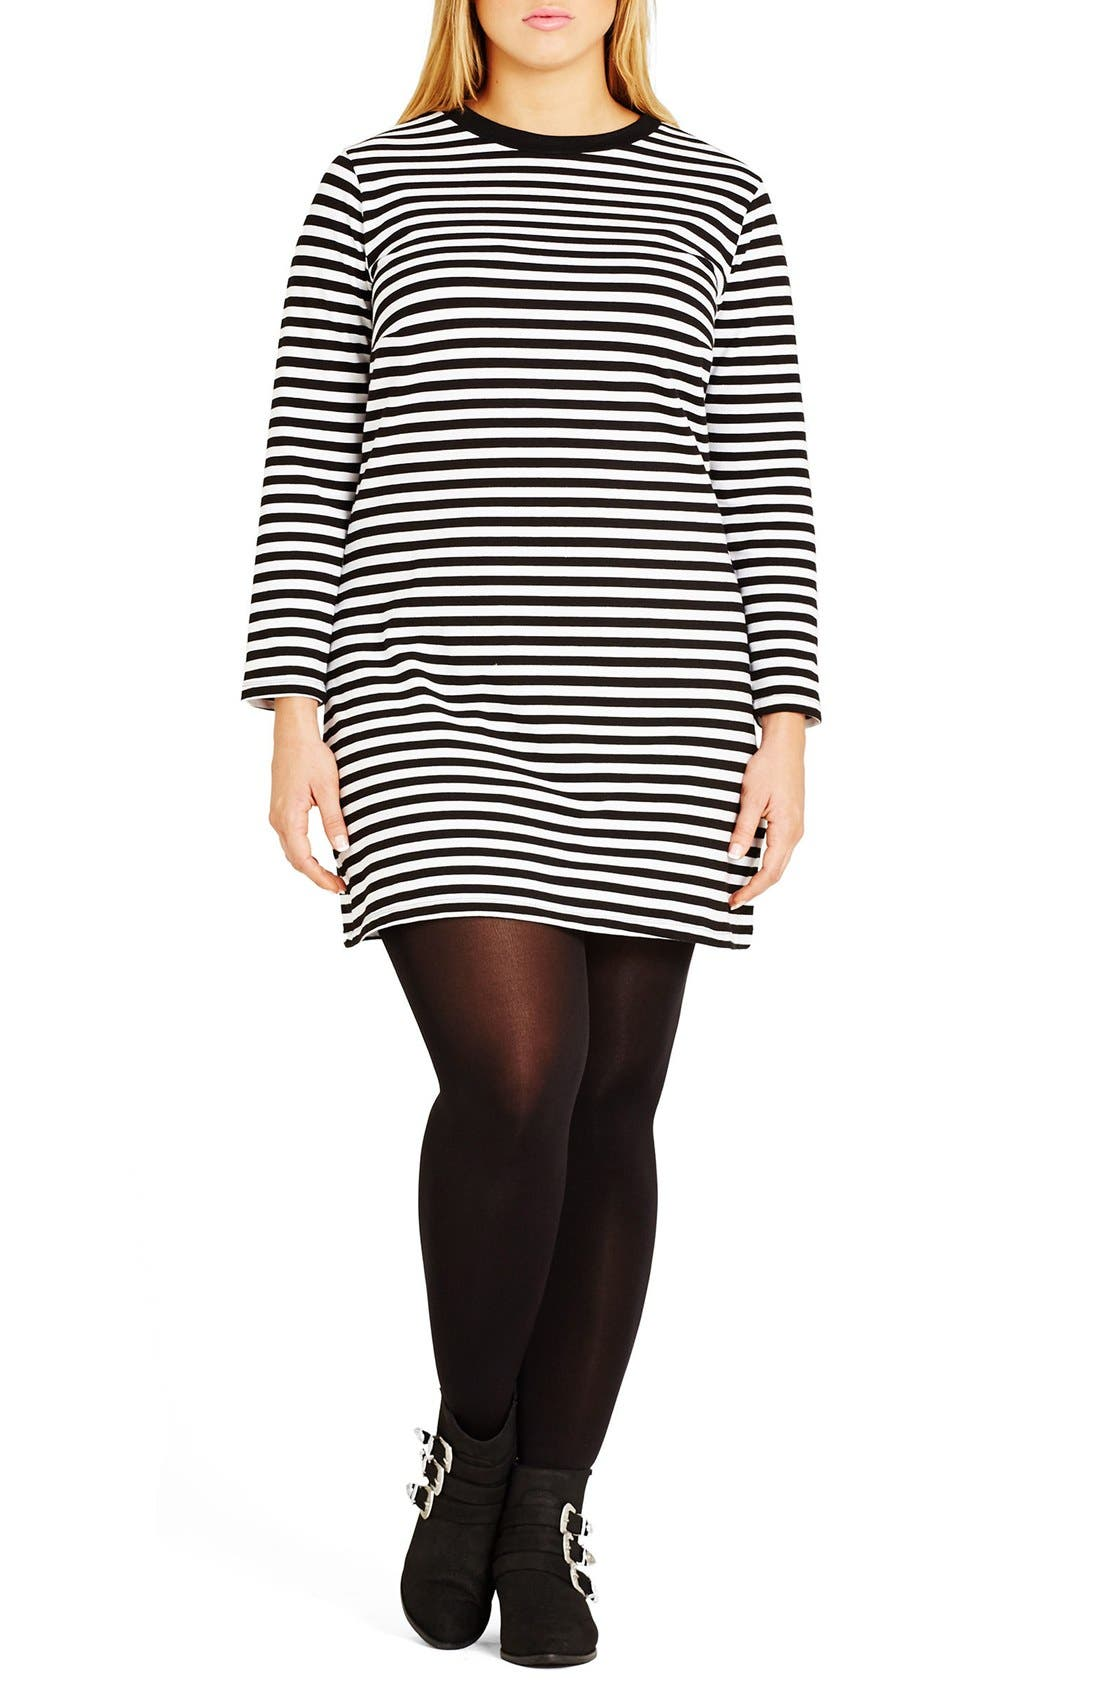 CITY CHIC 'Mono Magic' Stripe Stretch Cotton Tunic